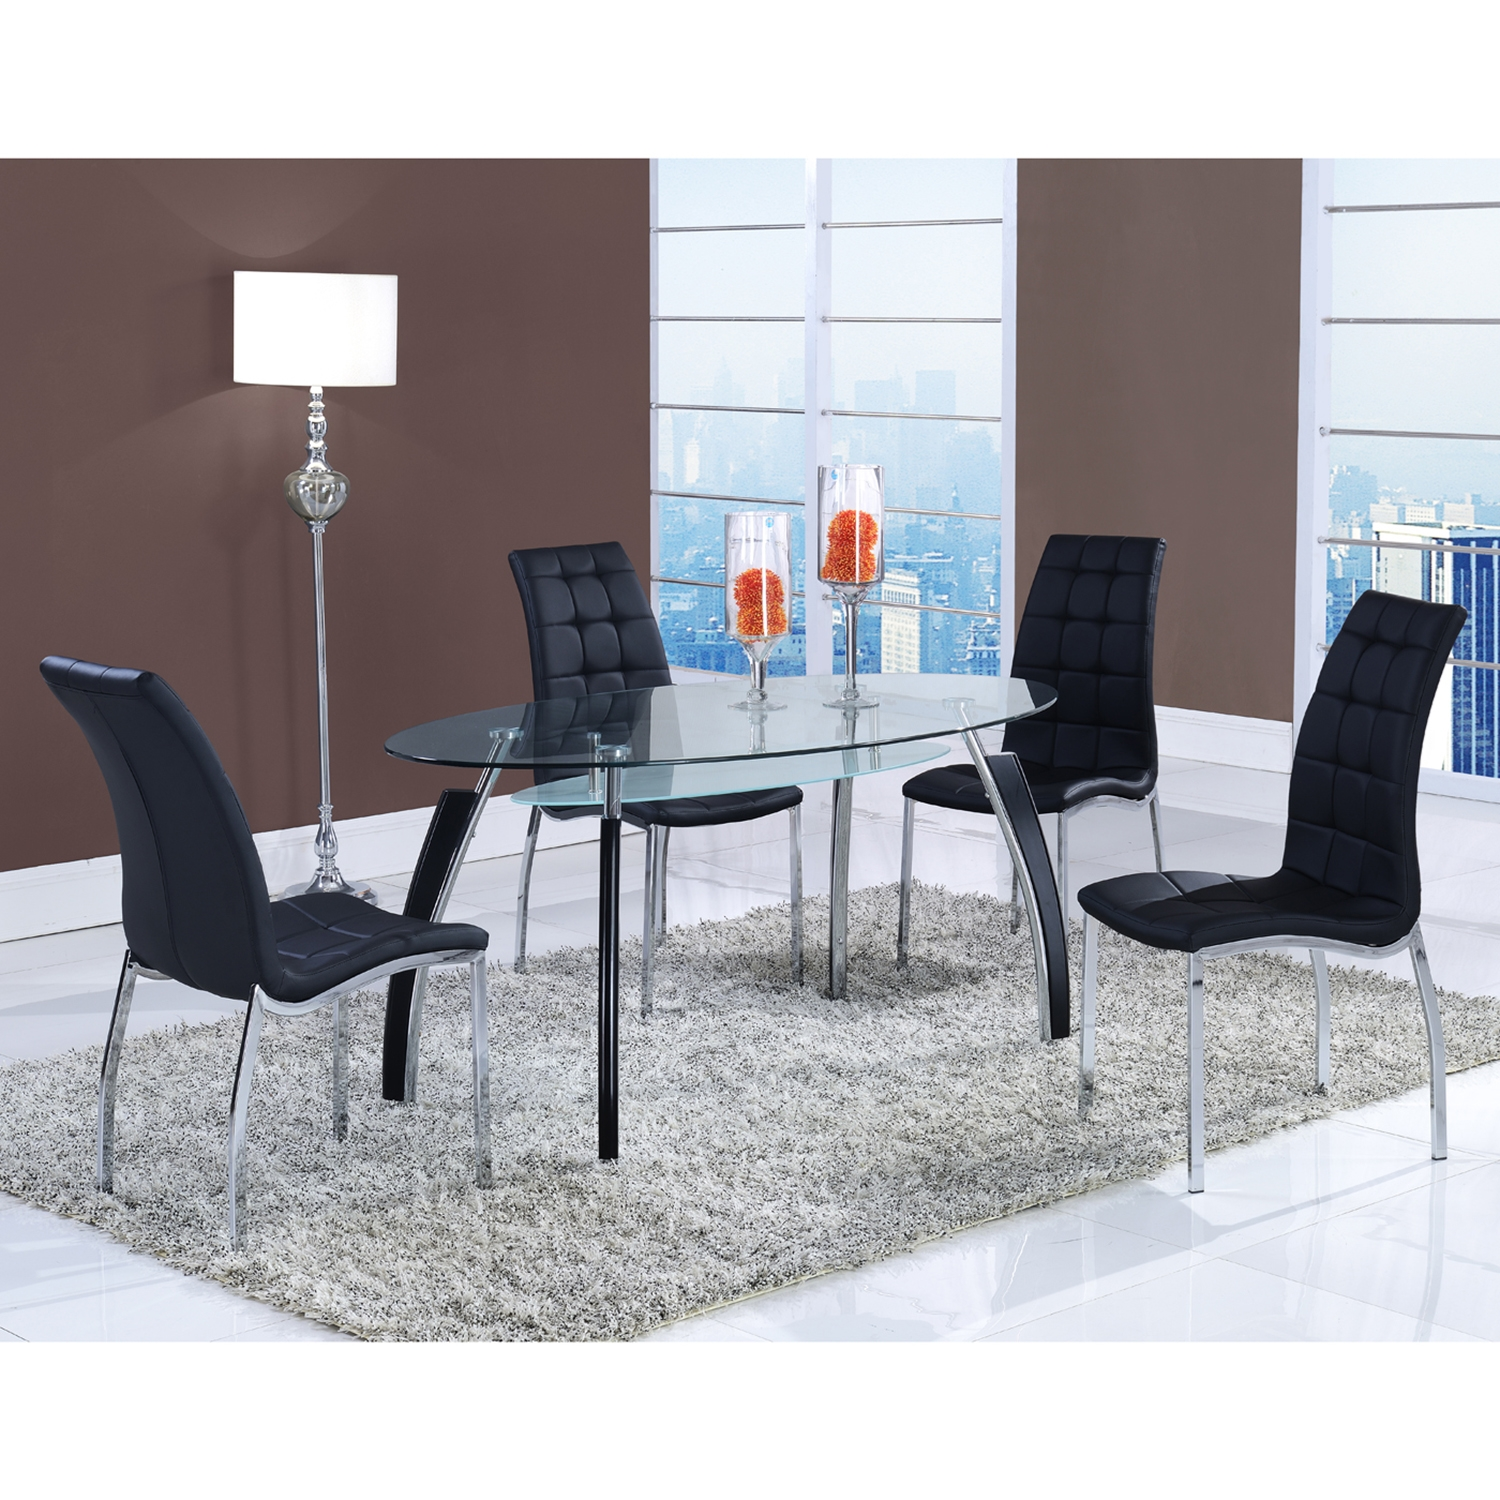 Dining Table - Clear Glass Top, Silver and Black Legs - GLO-D636DT-M